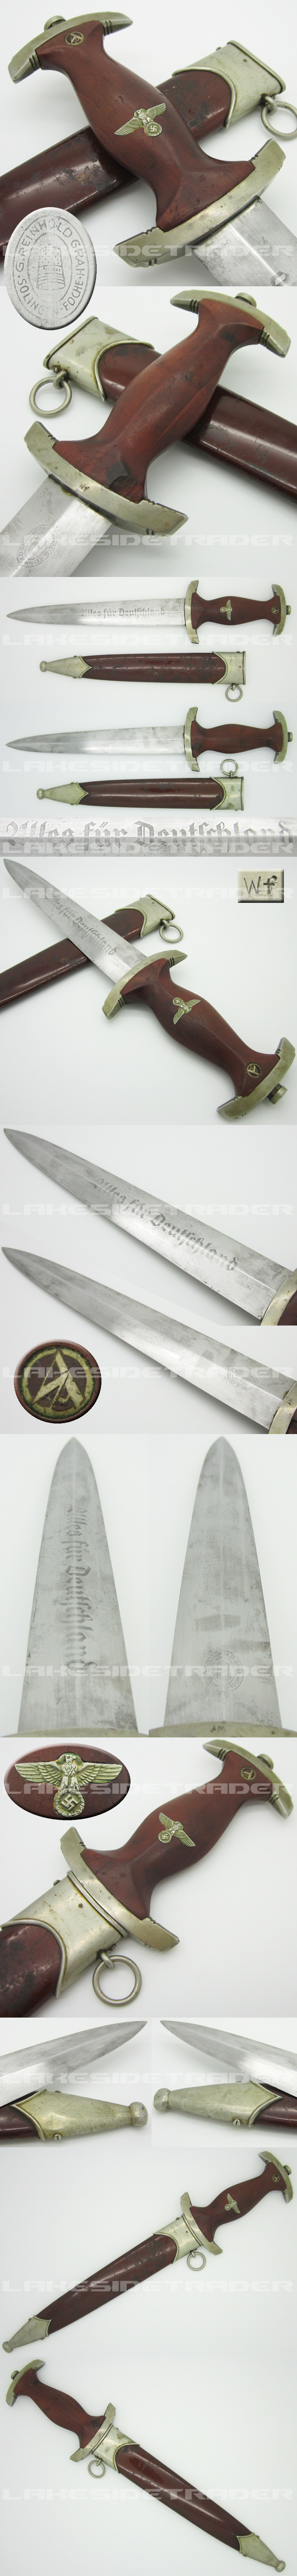 Early SA Dagger by G. Reinhold